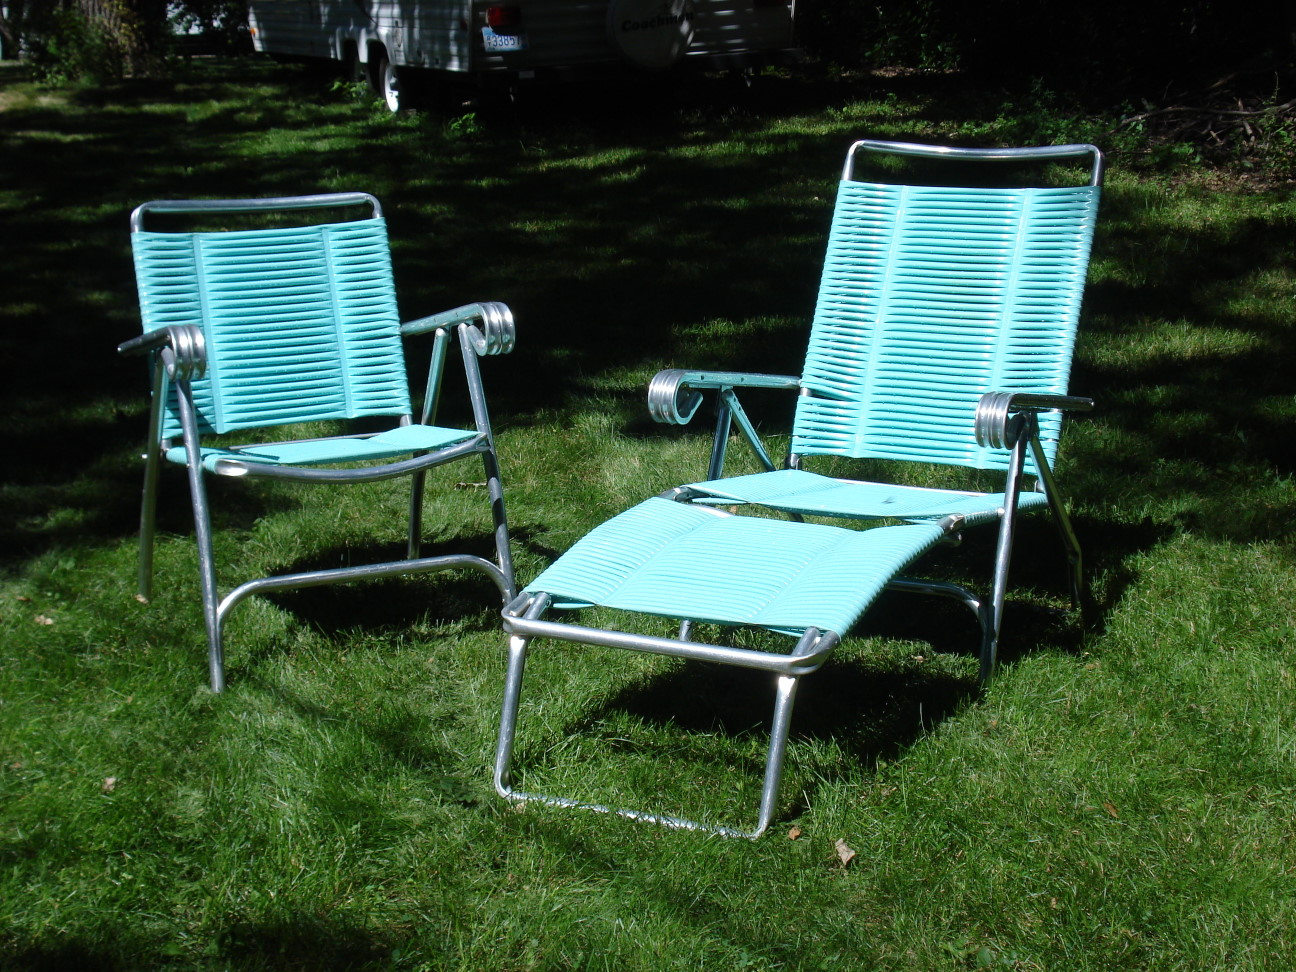 Retro Lawn Chair and Lounge - Retro Lawn Chair And Lounge – Erik G. Warner